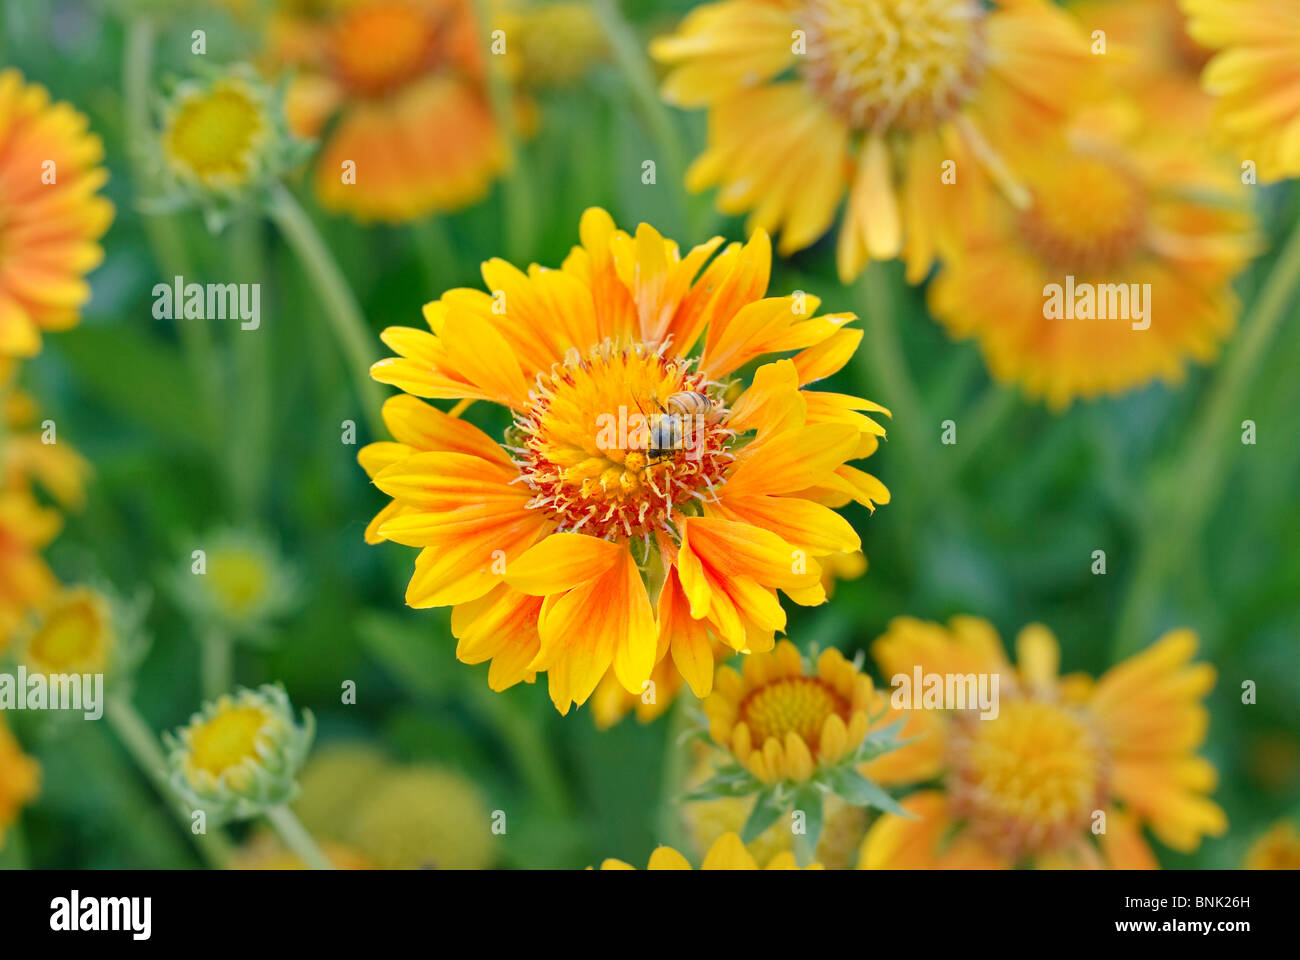 Bright orange flower with a bee feeding and pollinating it. - Stock Image